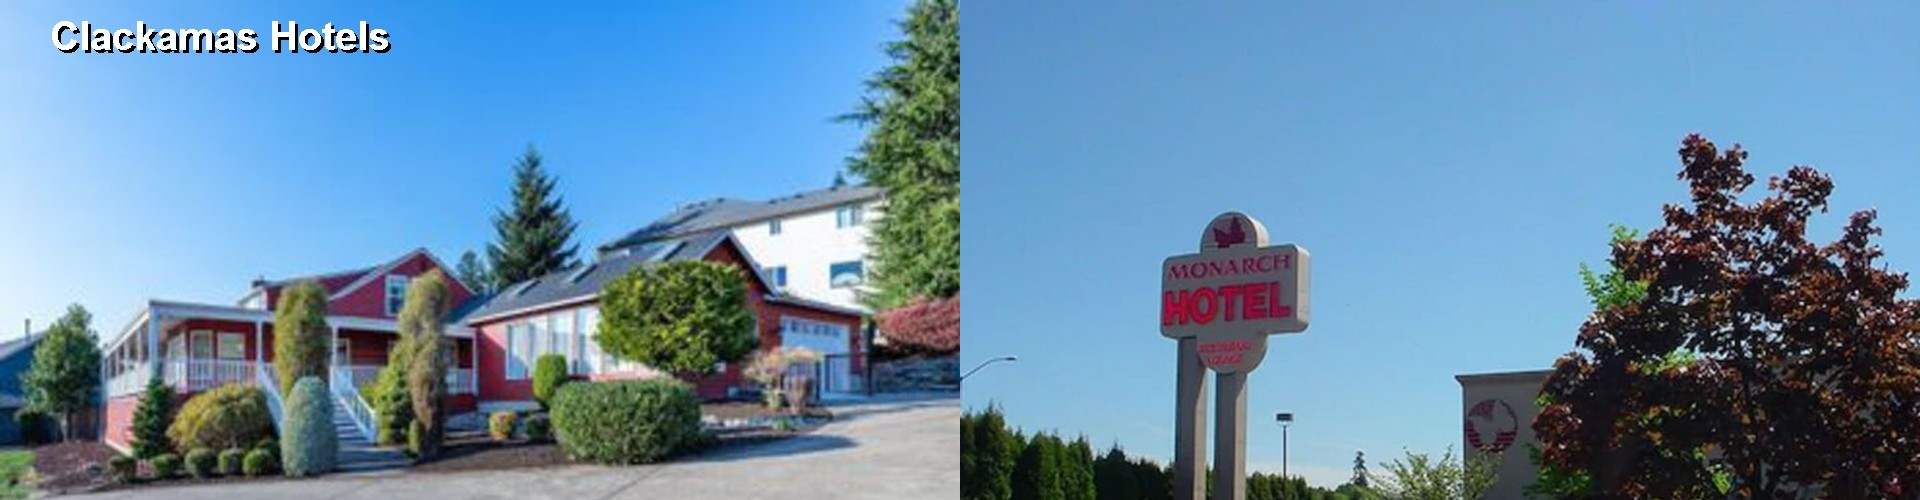 5 Best Hotels near Clackamas